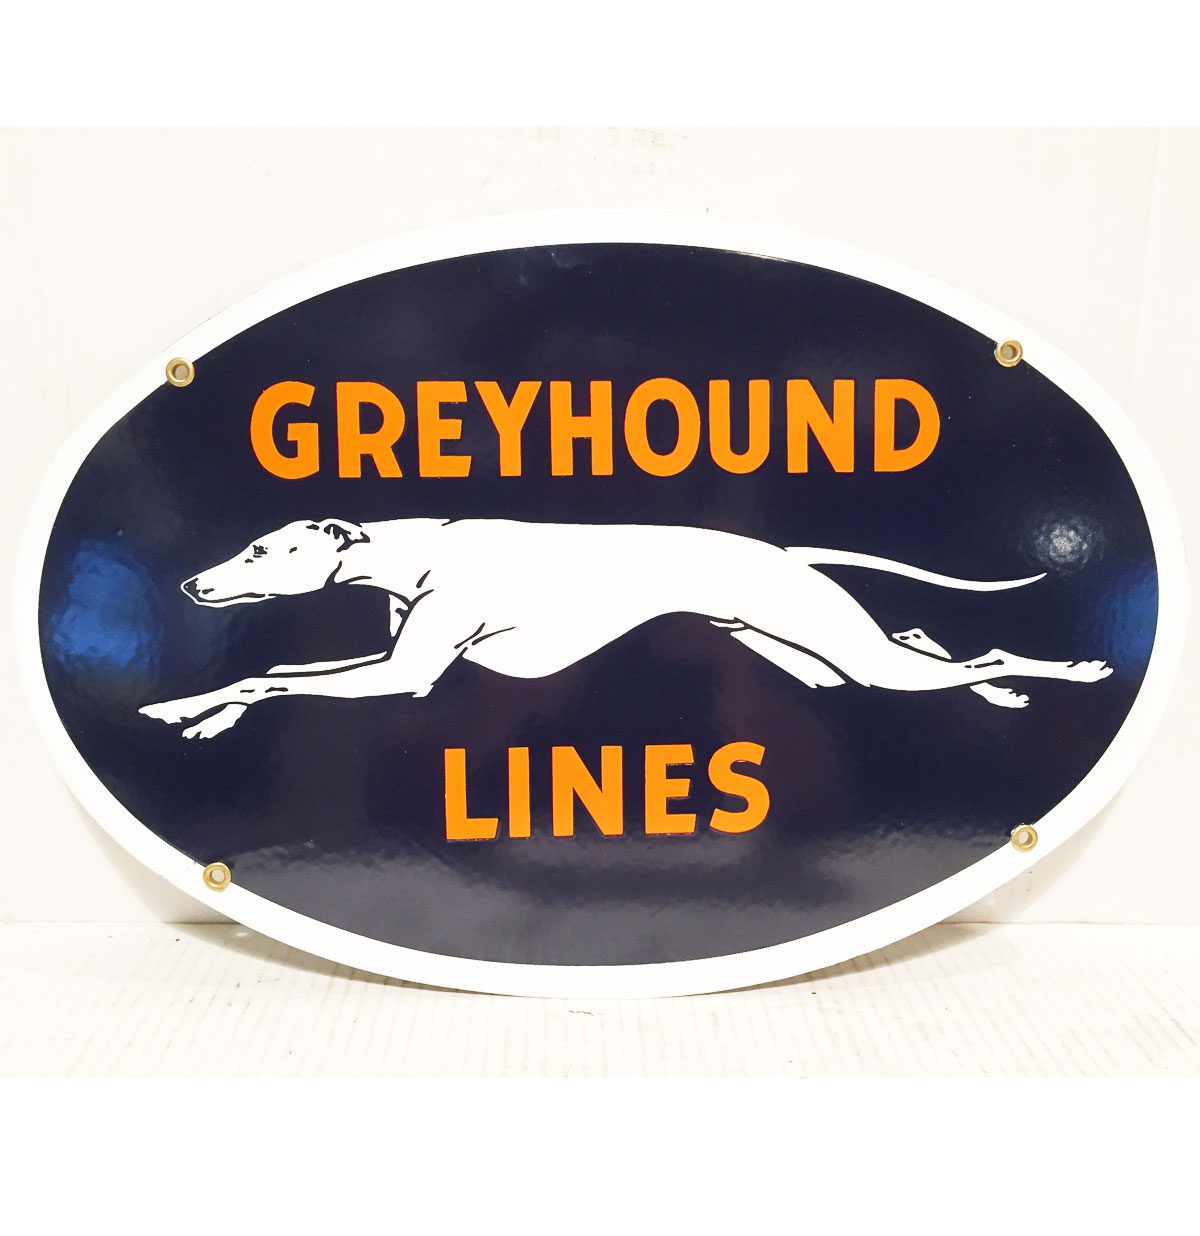 Greyhound Lines Emaille Bord Ovaal